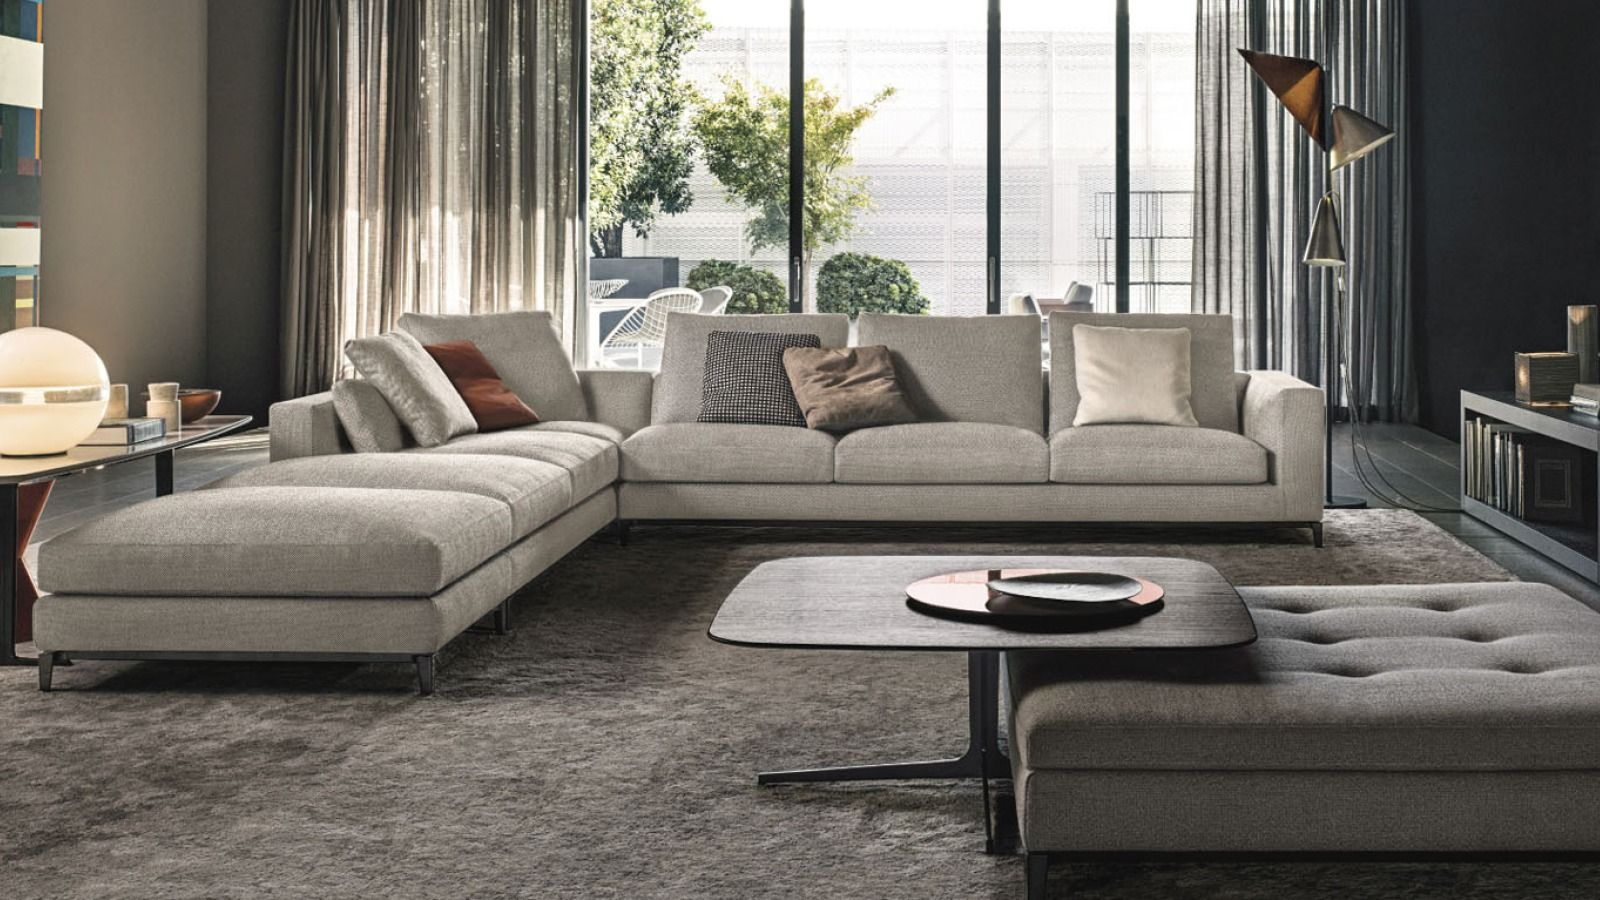 Contemporary Modern Luxury Furniture Perth Stores - Living Room Chairs Perth